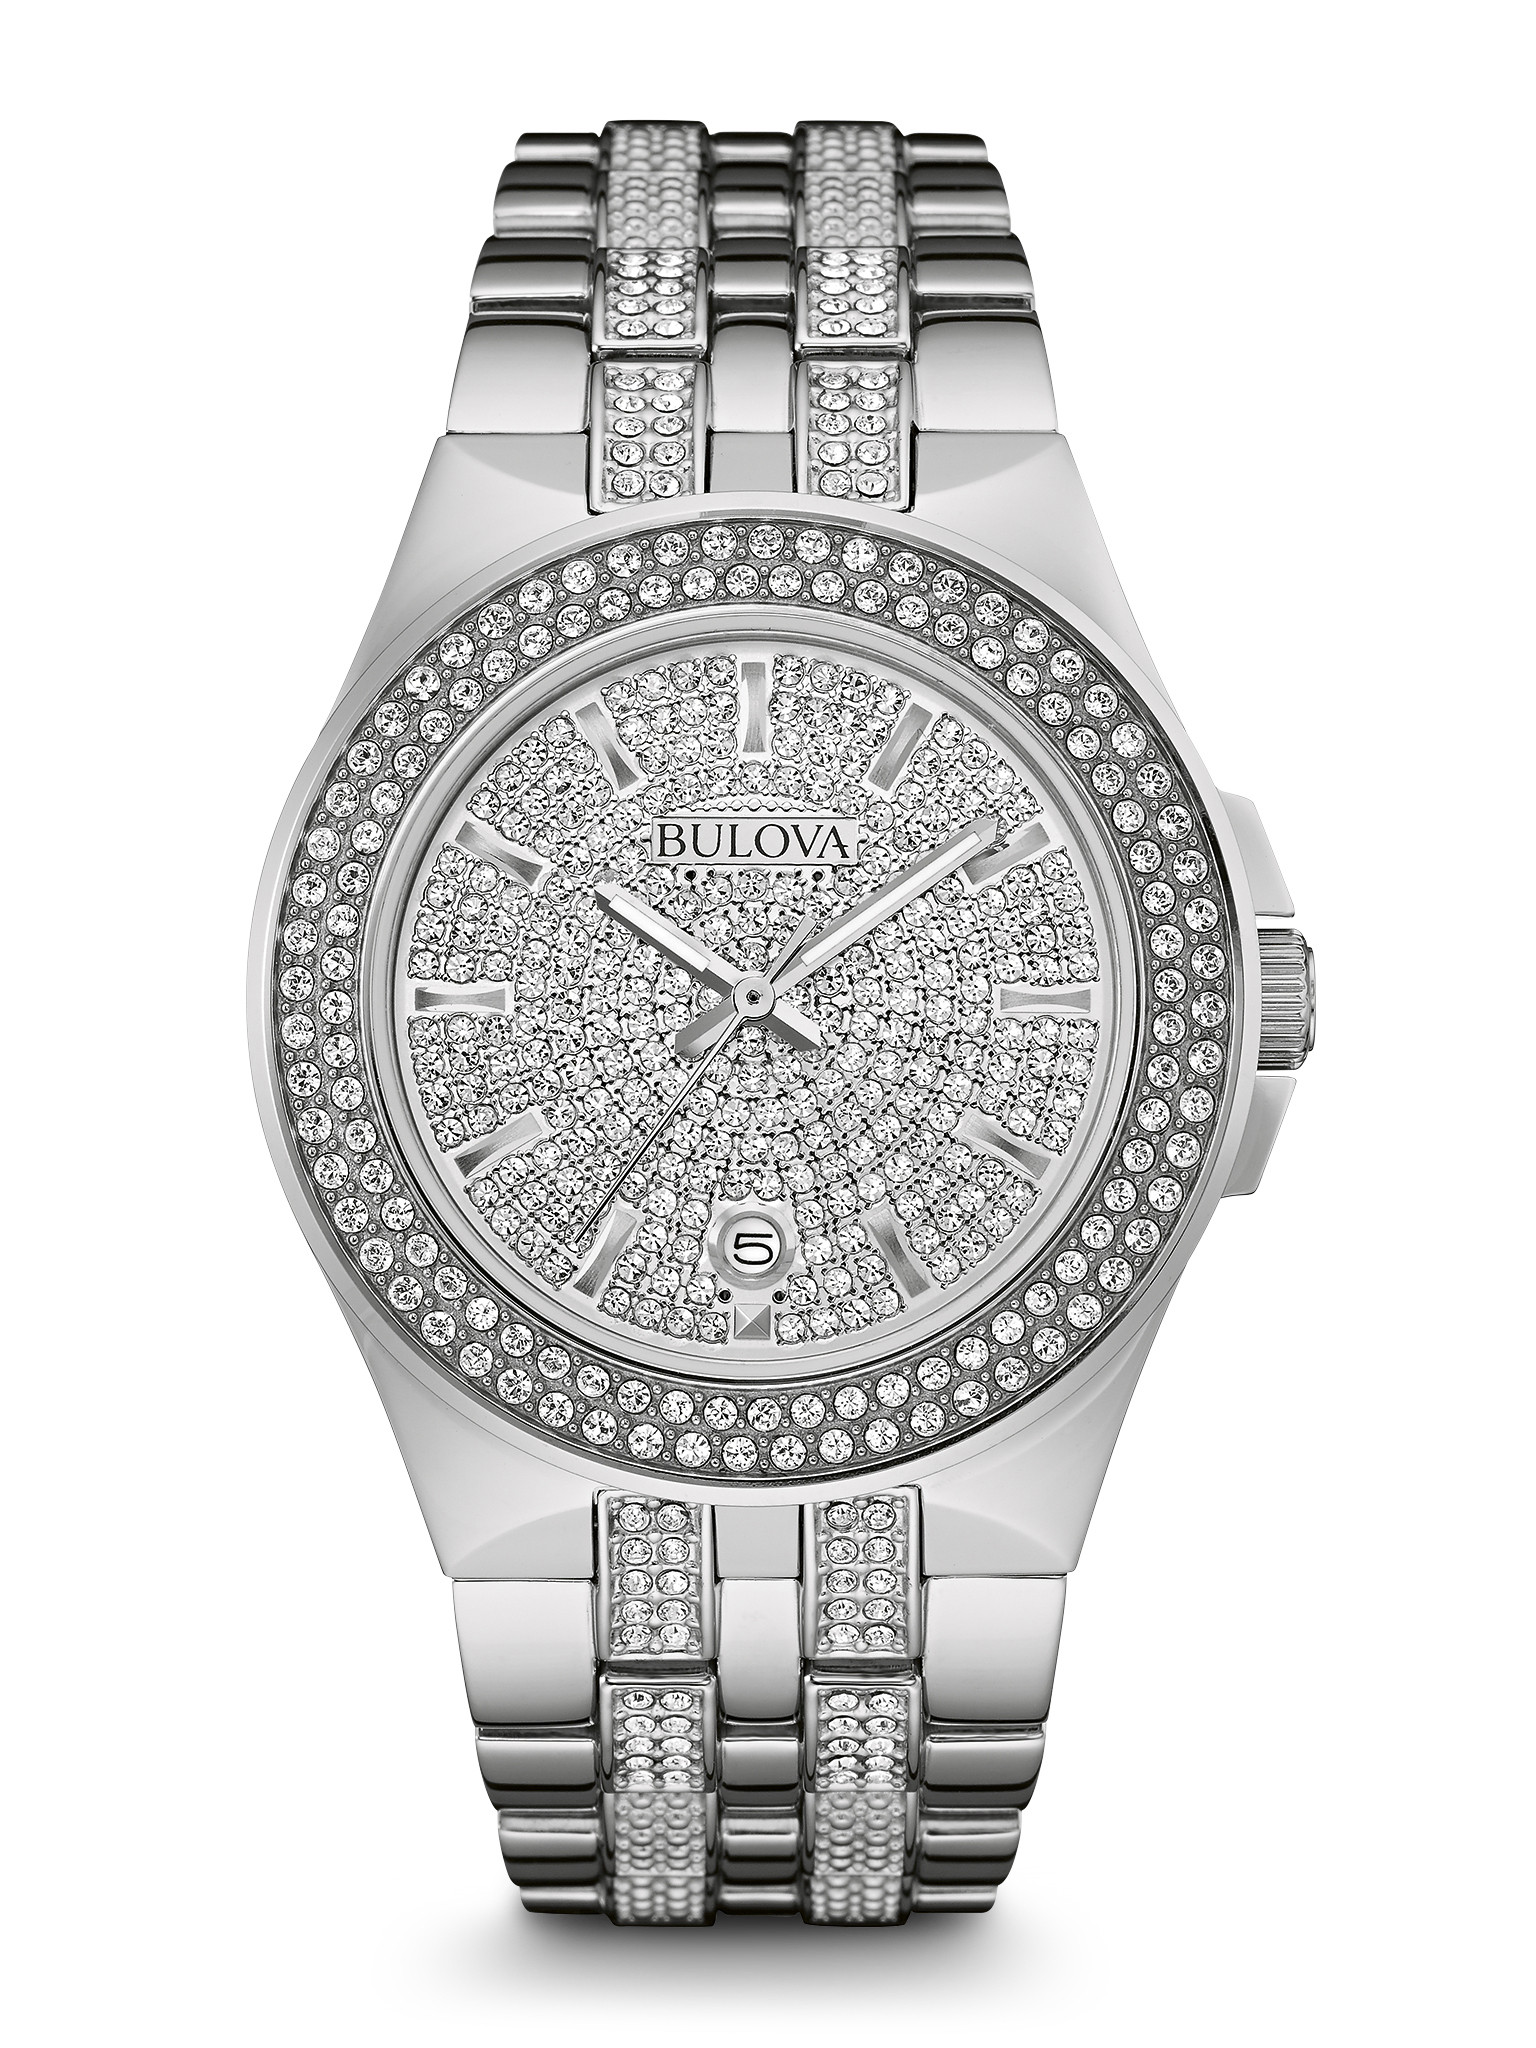 Bulova 96b235 Men's Crystal Watch • Long Island Ny • Men's. Bracelet Necklace. Strand Necklace. Cubic Zirconia Jewelry. Cotton Cord Bracelet. Wedding Ring Set Platinum. Where Can I Buy Ankle Bracelets. Monogram Lockets. Kelly Hermes Bracelet